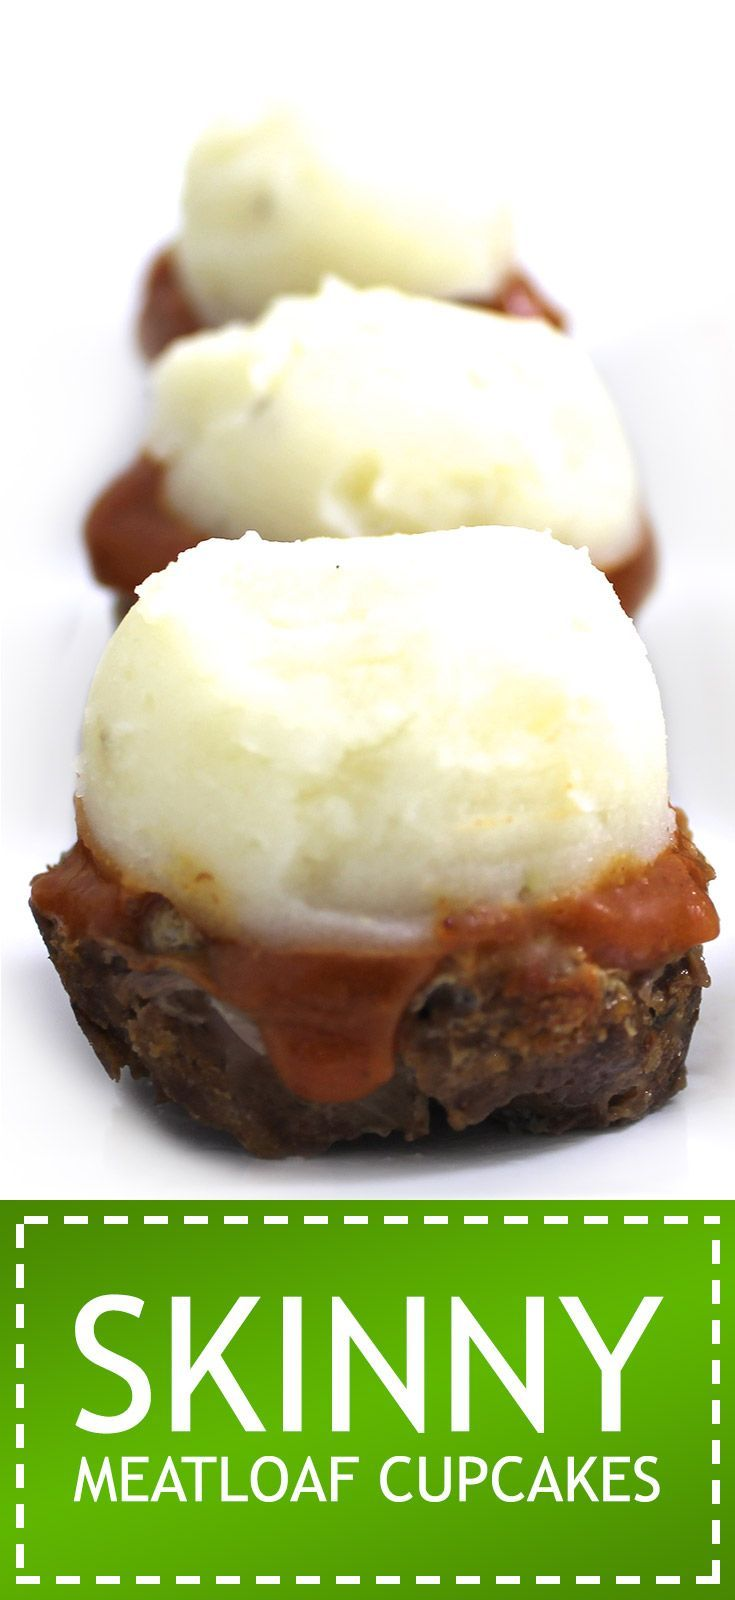 Skinny Meatloaf Cupcakes. Adorable, fantastic and topped with skinny mashed potatoes. Each  has 154 calories, 3g fat & 4 Weight Watchers POINTS PLUS. http://www.skinnykitchen.com/recipes/skinny-meatloaf-cupcakes/